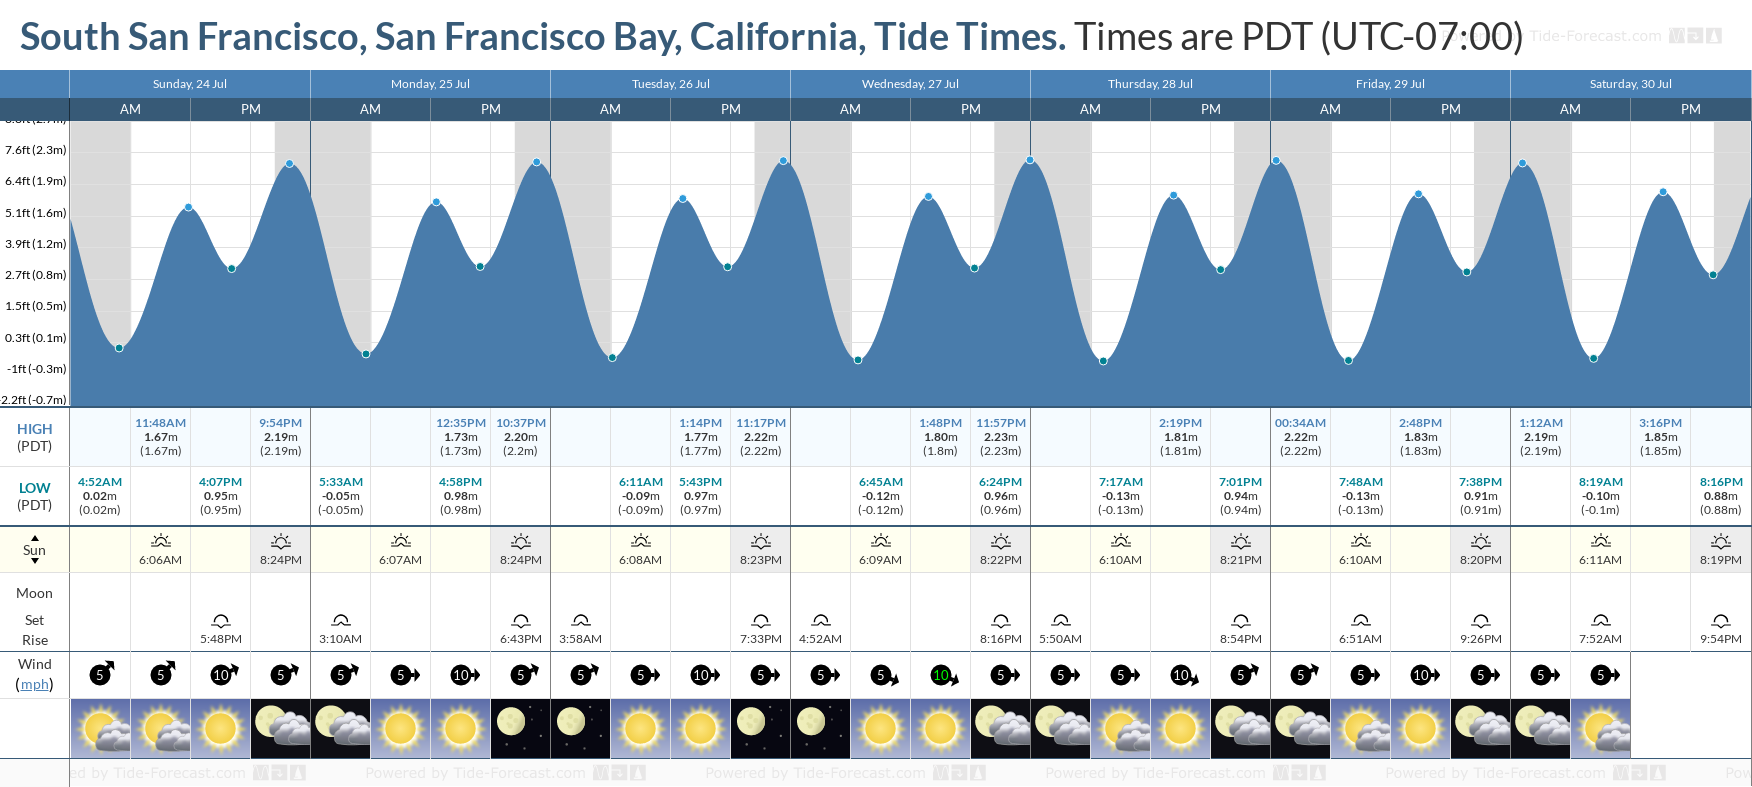 South San Francisco, San Francisco Bay, California Tide Chart including high and low tide tide times for the next 7 days